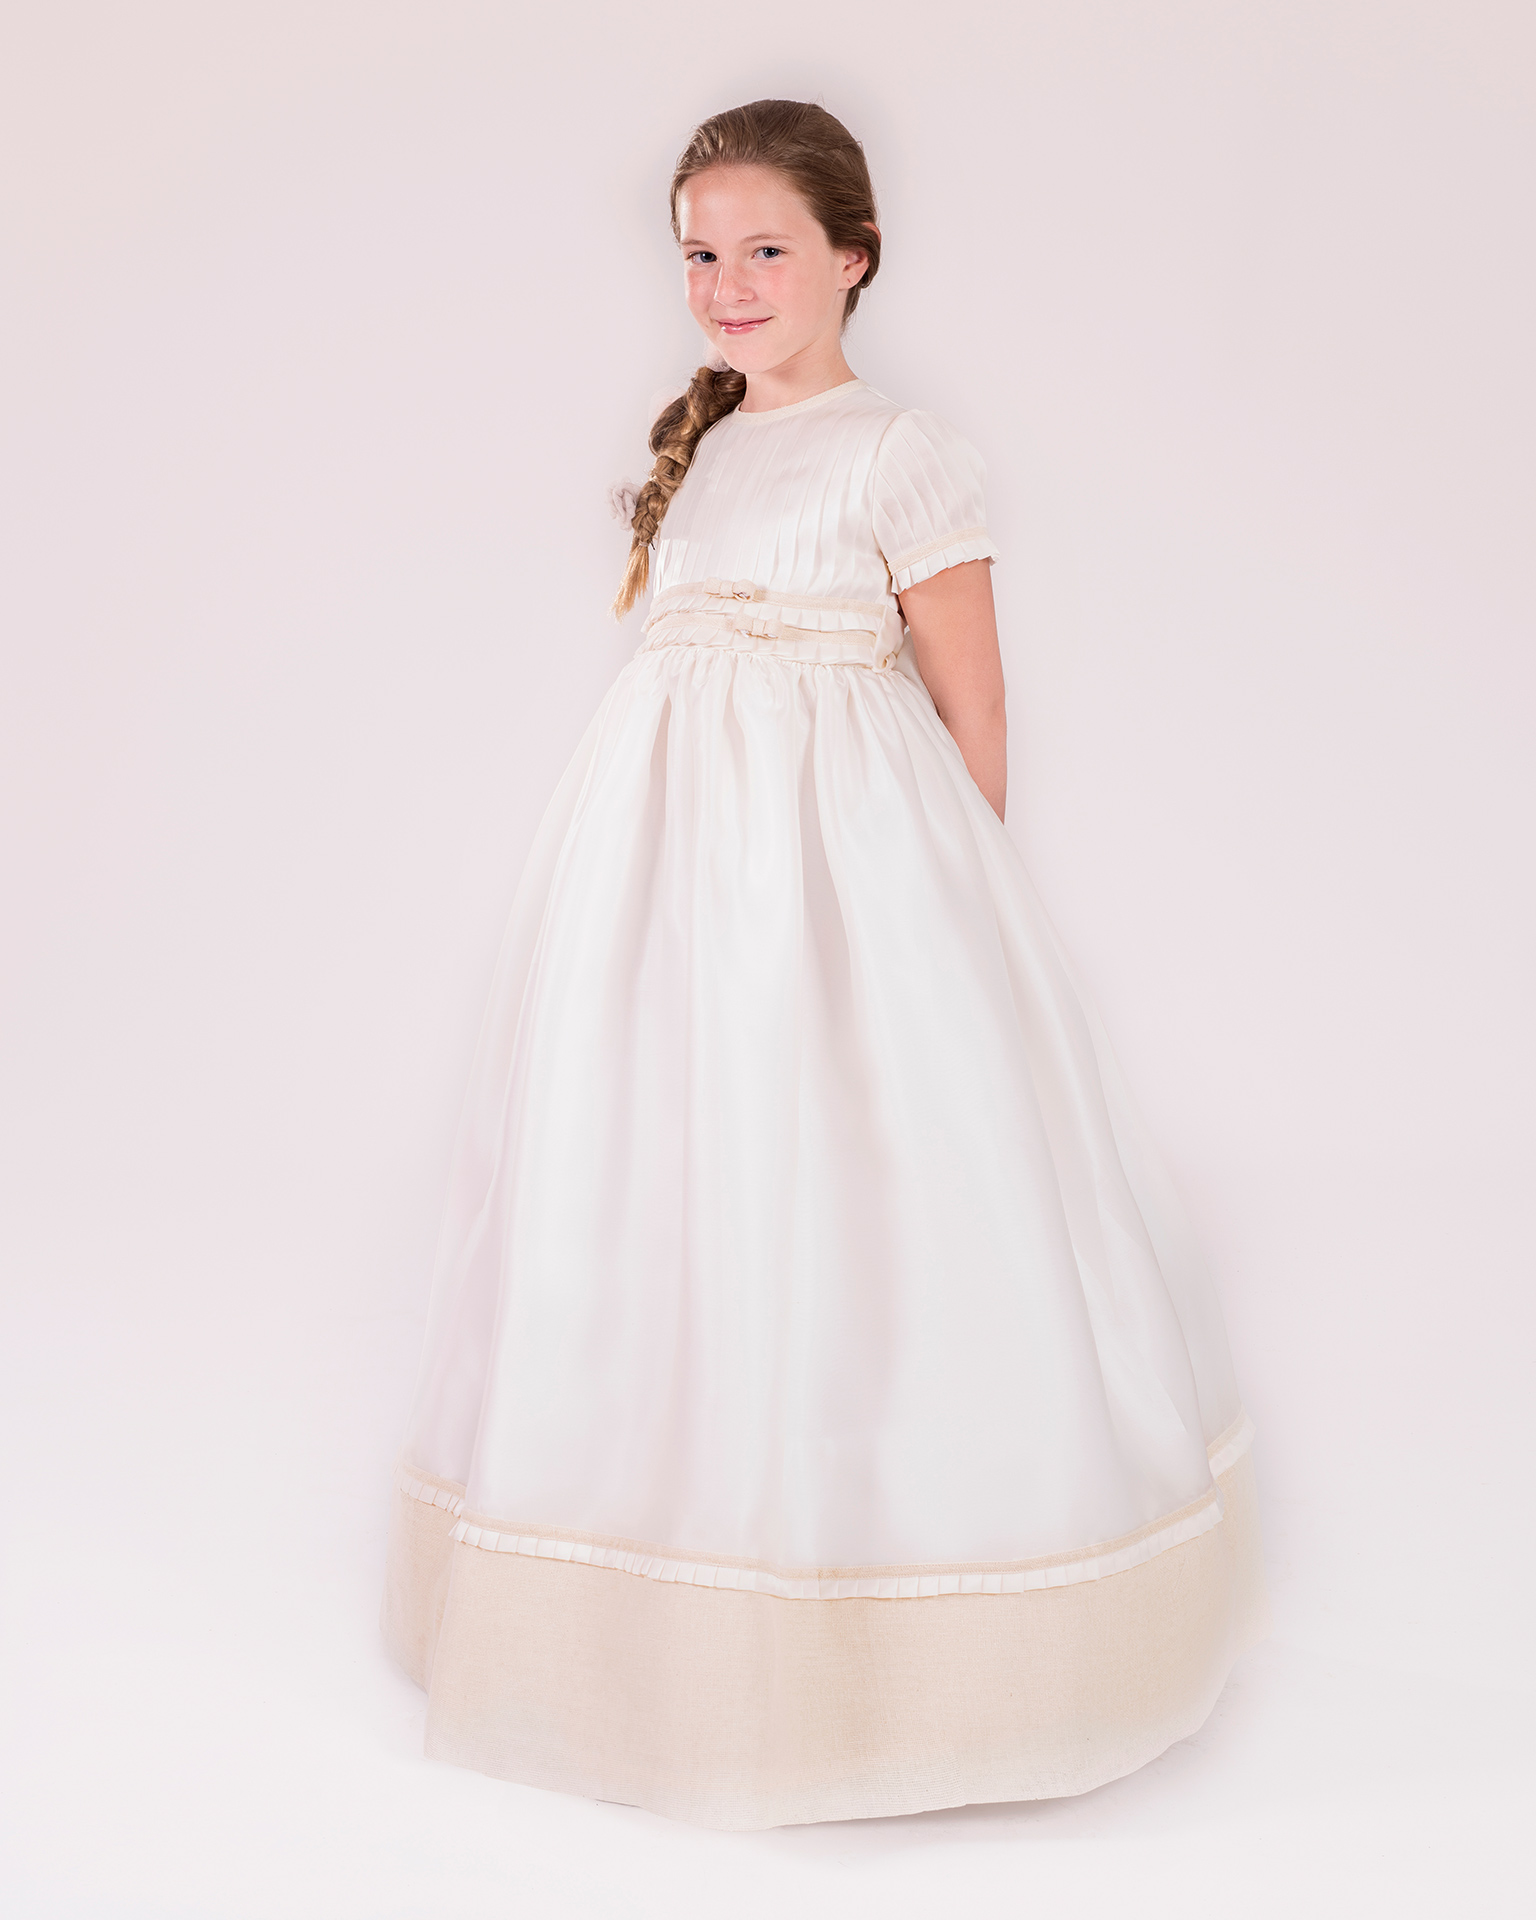 90146 ballgown-style First Communion dress